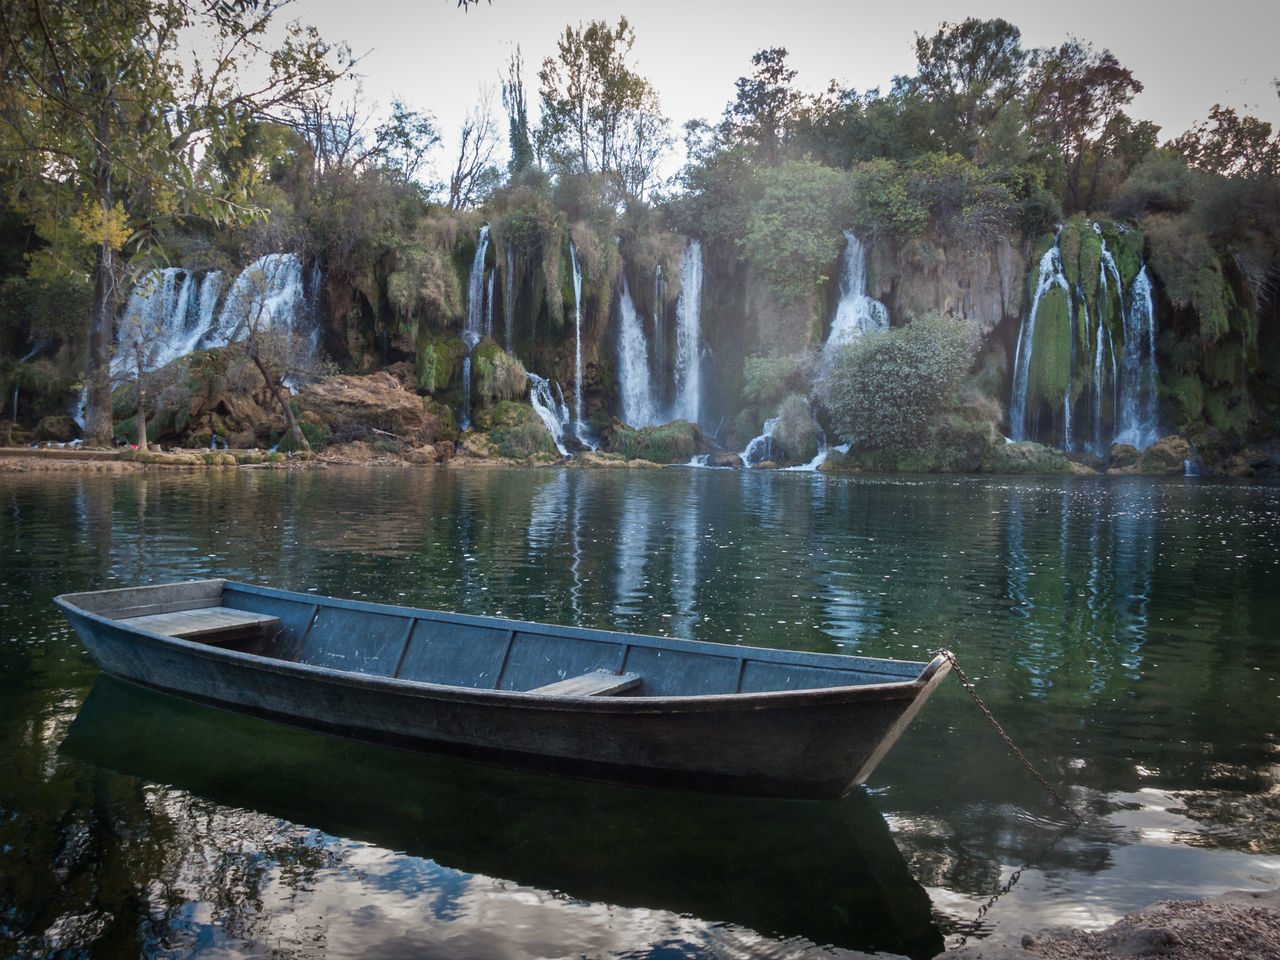 Landscape Day Outdoors Tree Tourist Tourist Attraction  Lonely Tourism Kravica, Bosnia & Herzegovina Bosnia And Herzegovina Famous Place Waterfall Nature Reflection Water Boat Kravice